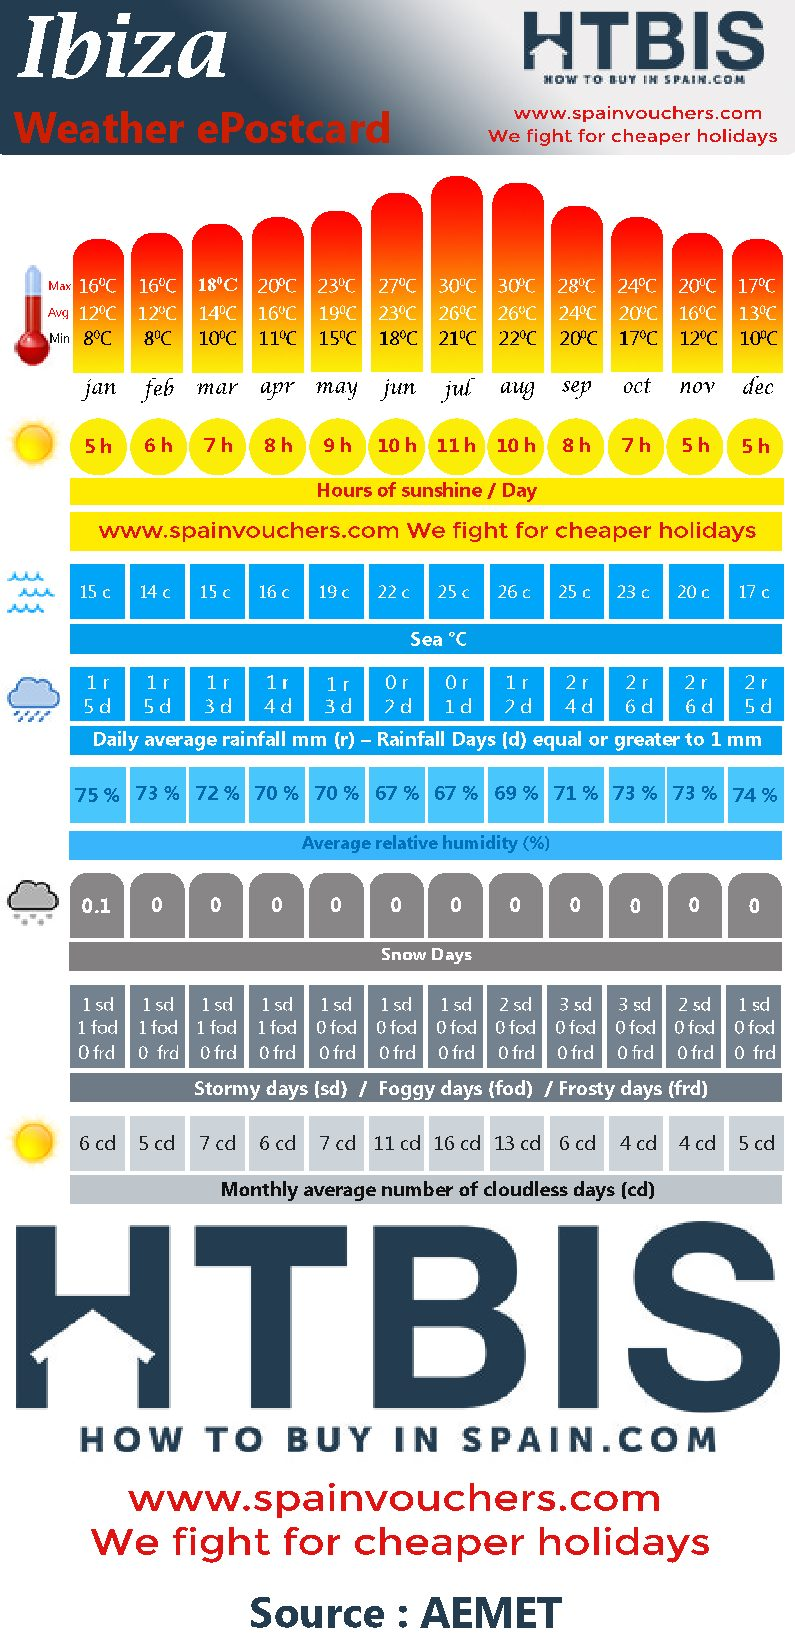 Ibiza, Weather statistic Infographic